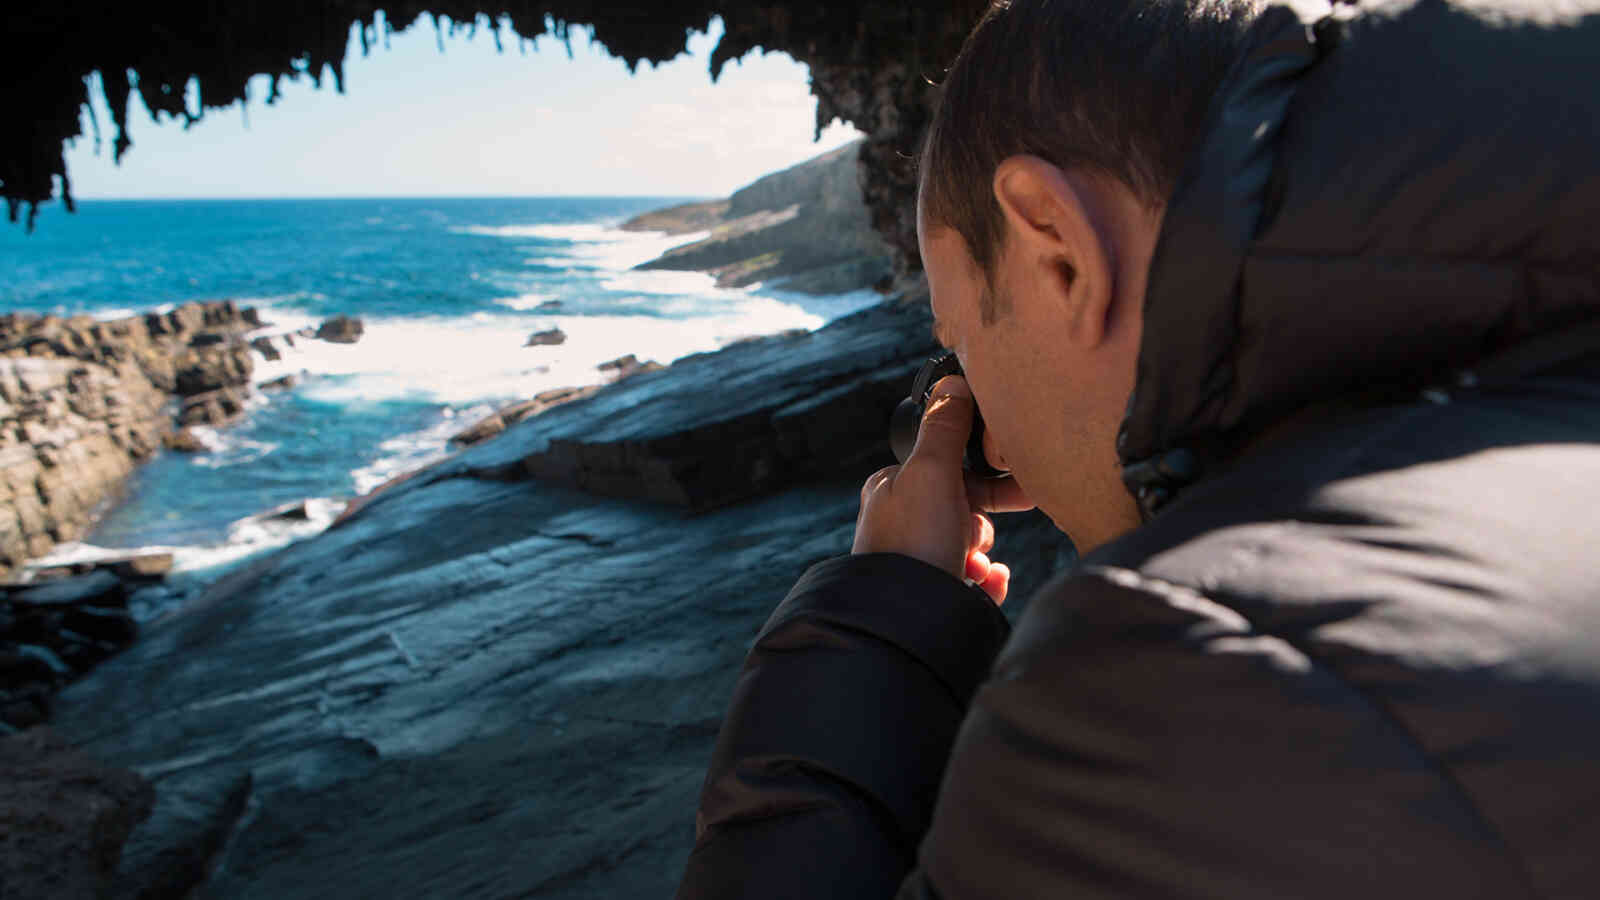 Man Taking Photos At Admirals Arch Kangaroo Island 1920X1200Px